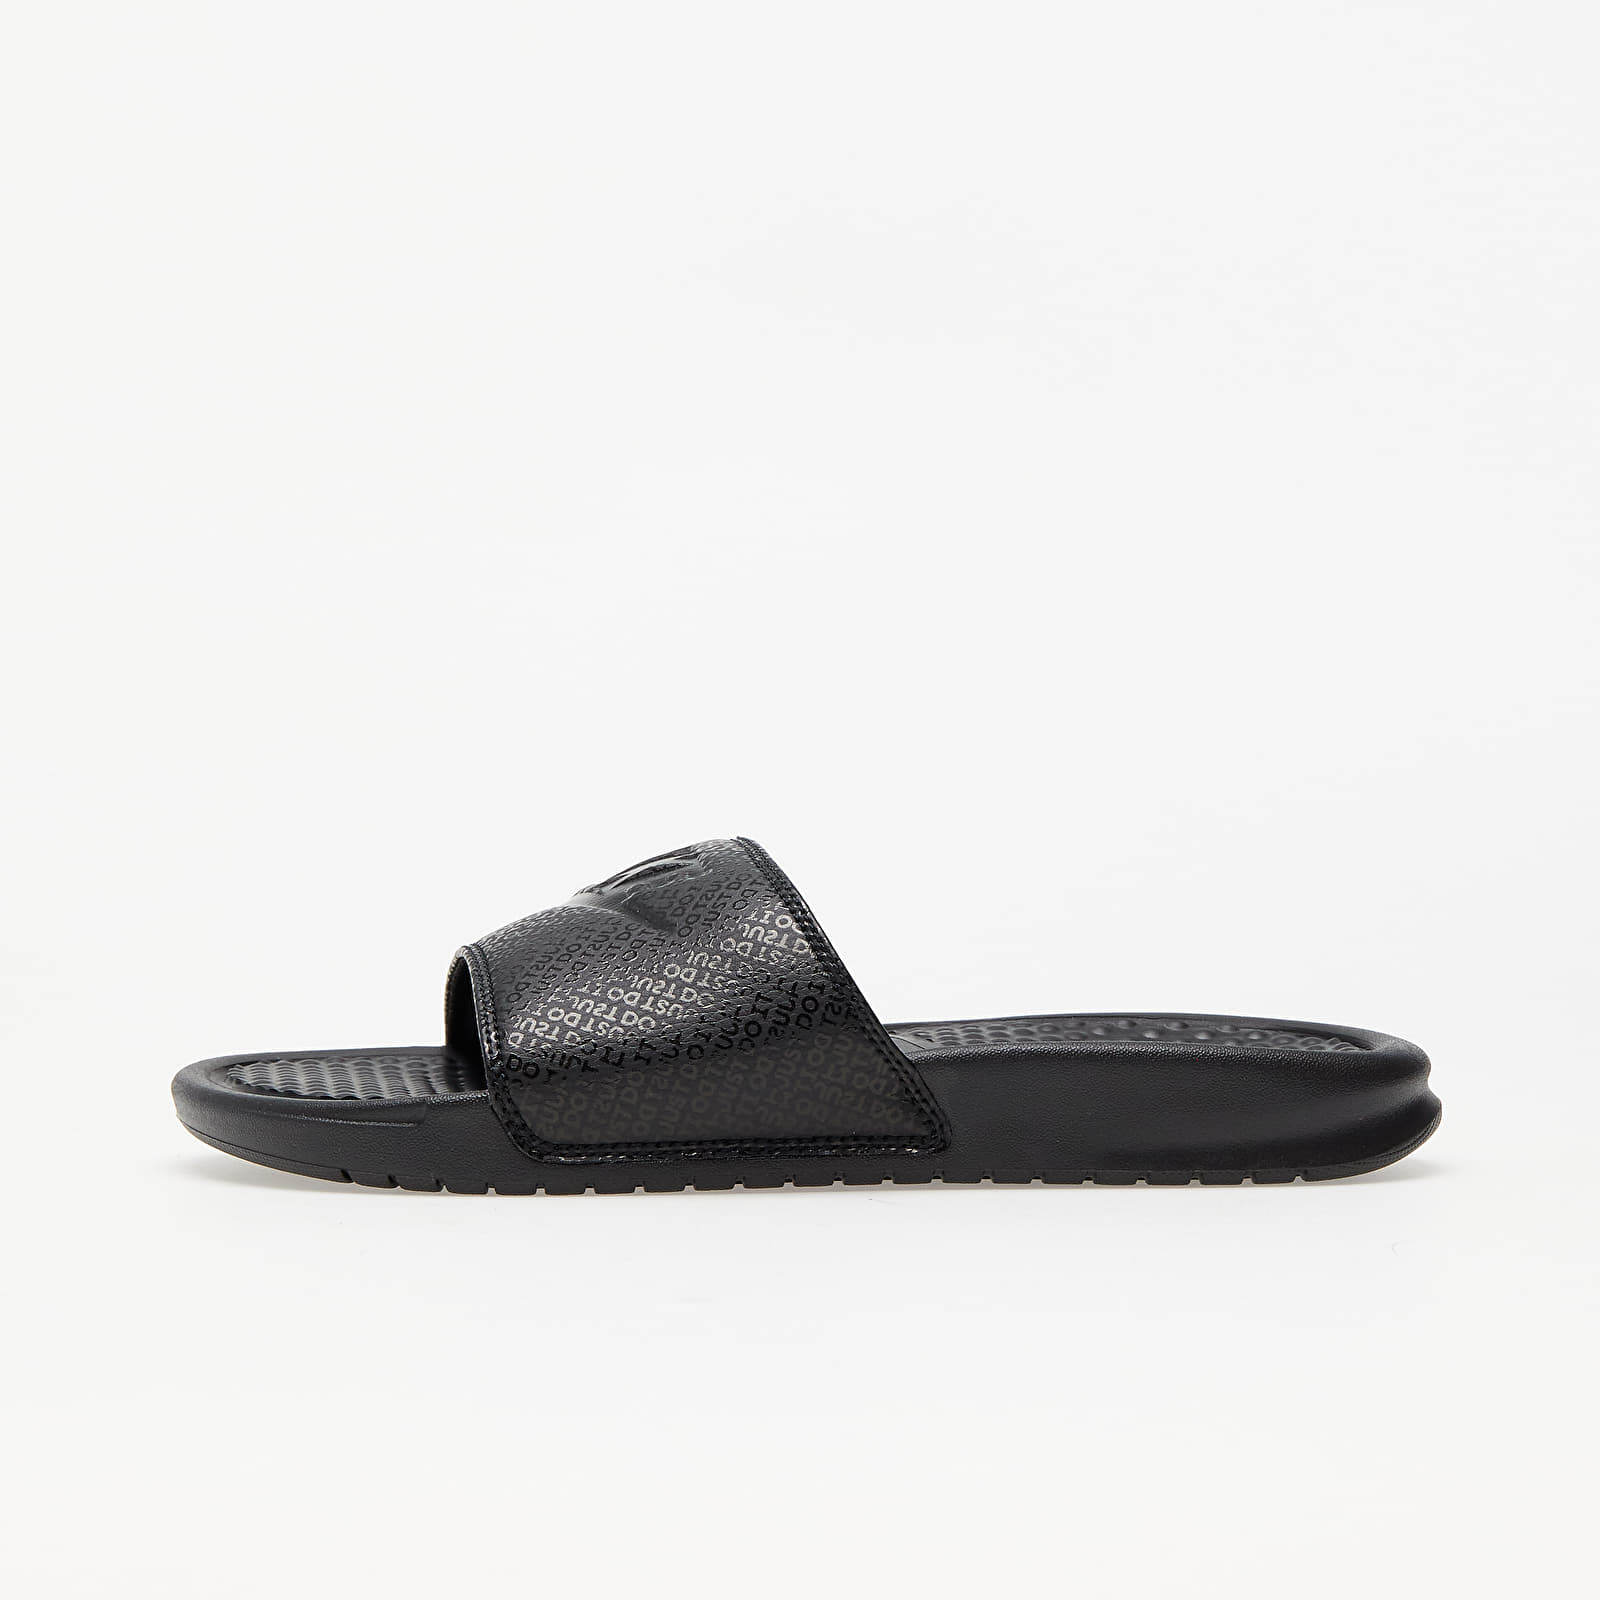 Men's shoes Nike Benassi Jdi Black/ Black-Black